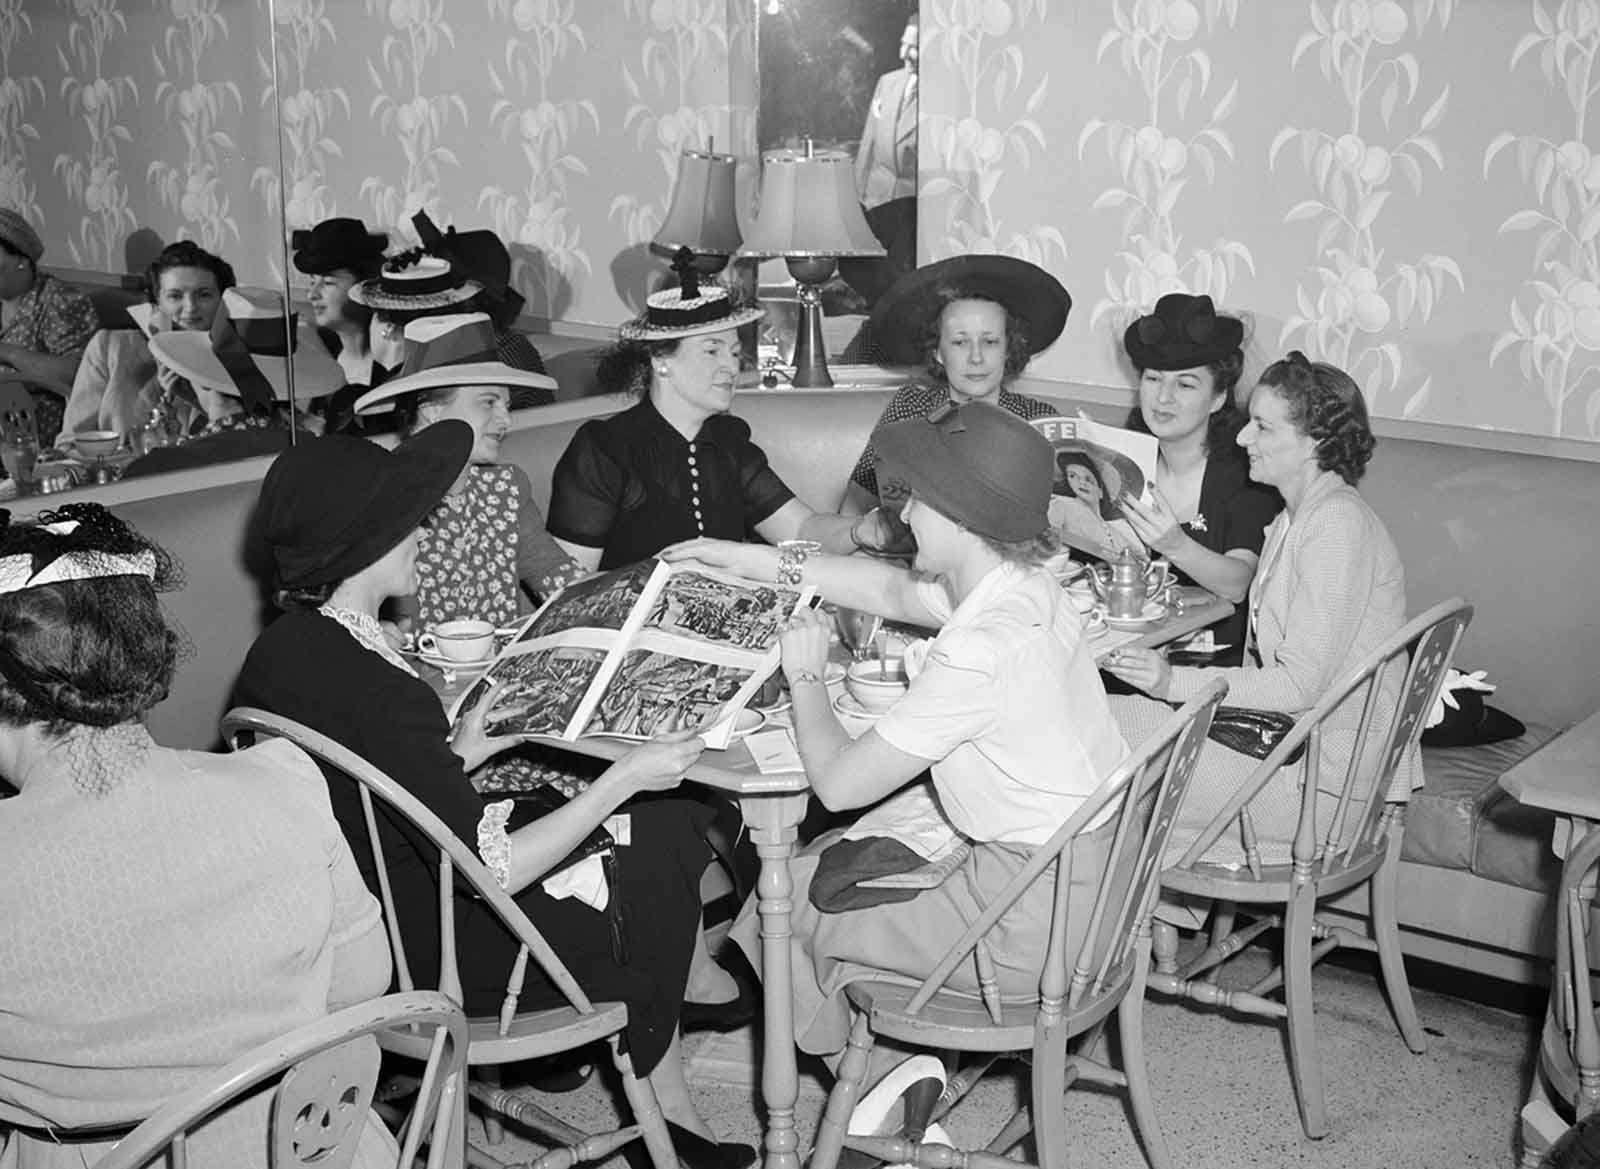 Detroit, Michigan. Shoppers at lunch at the Crowley-Milner department store in July of 1941.